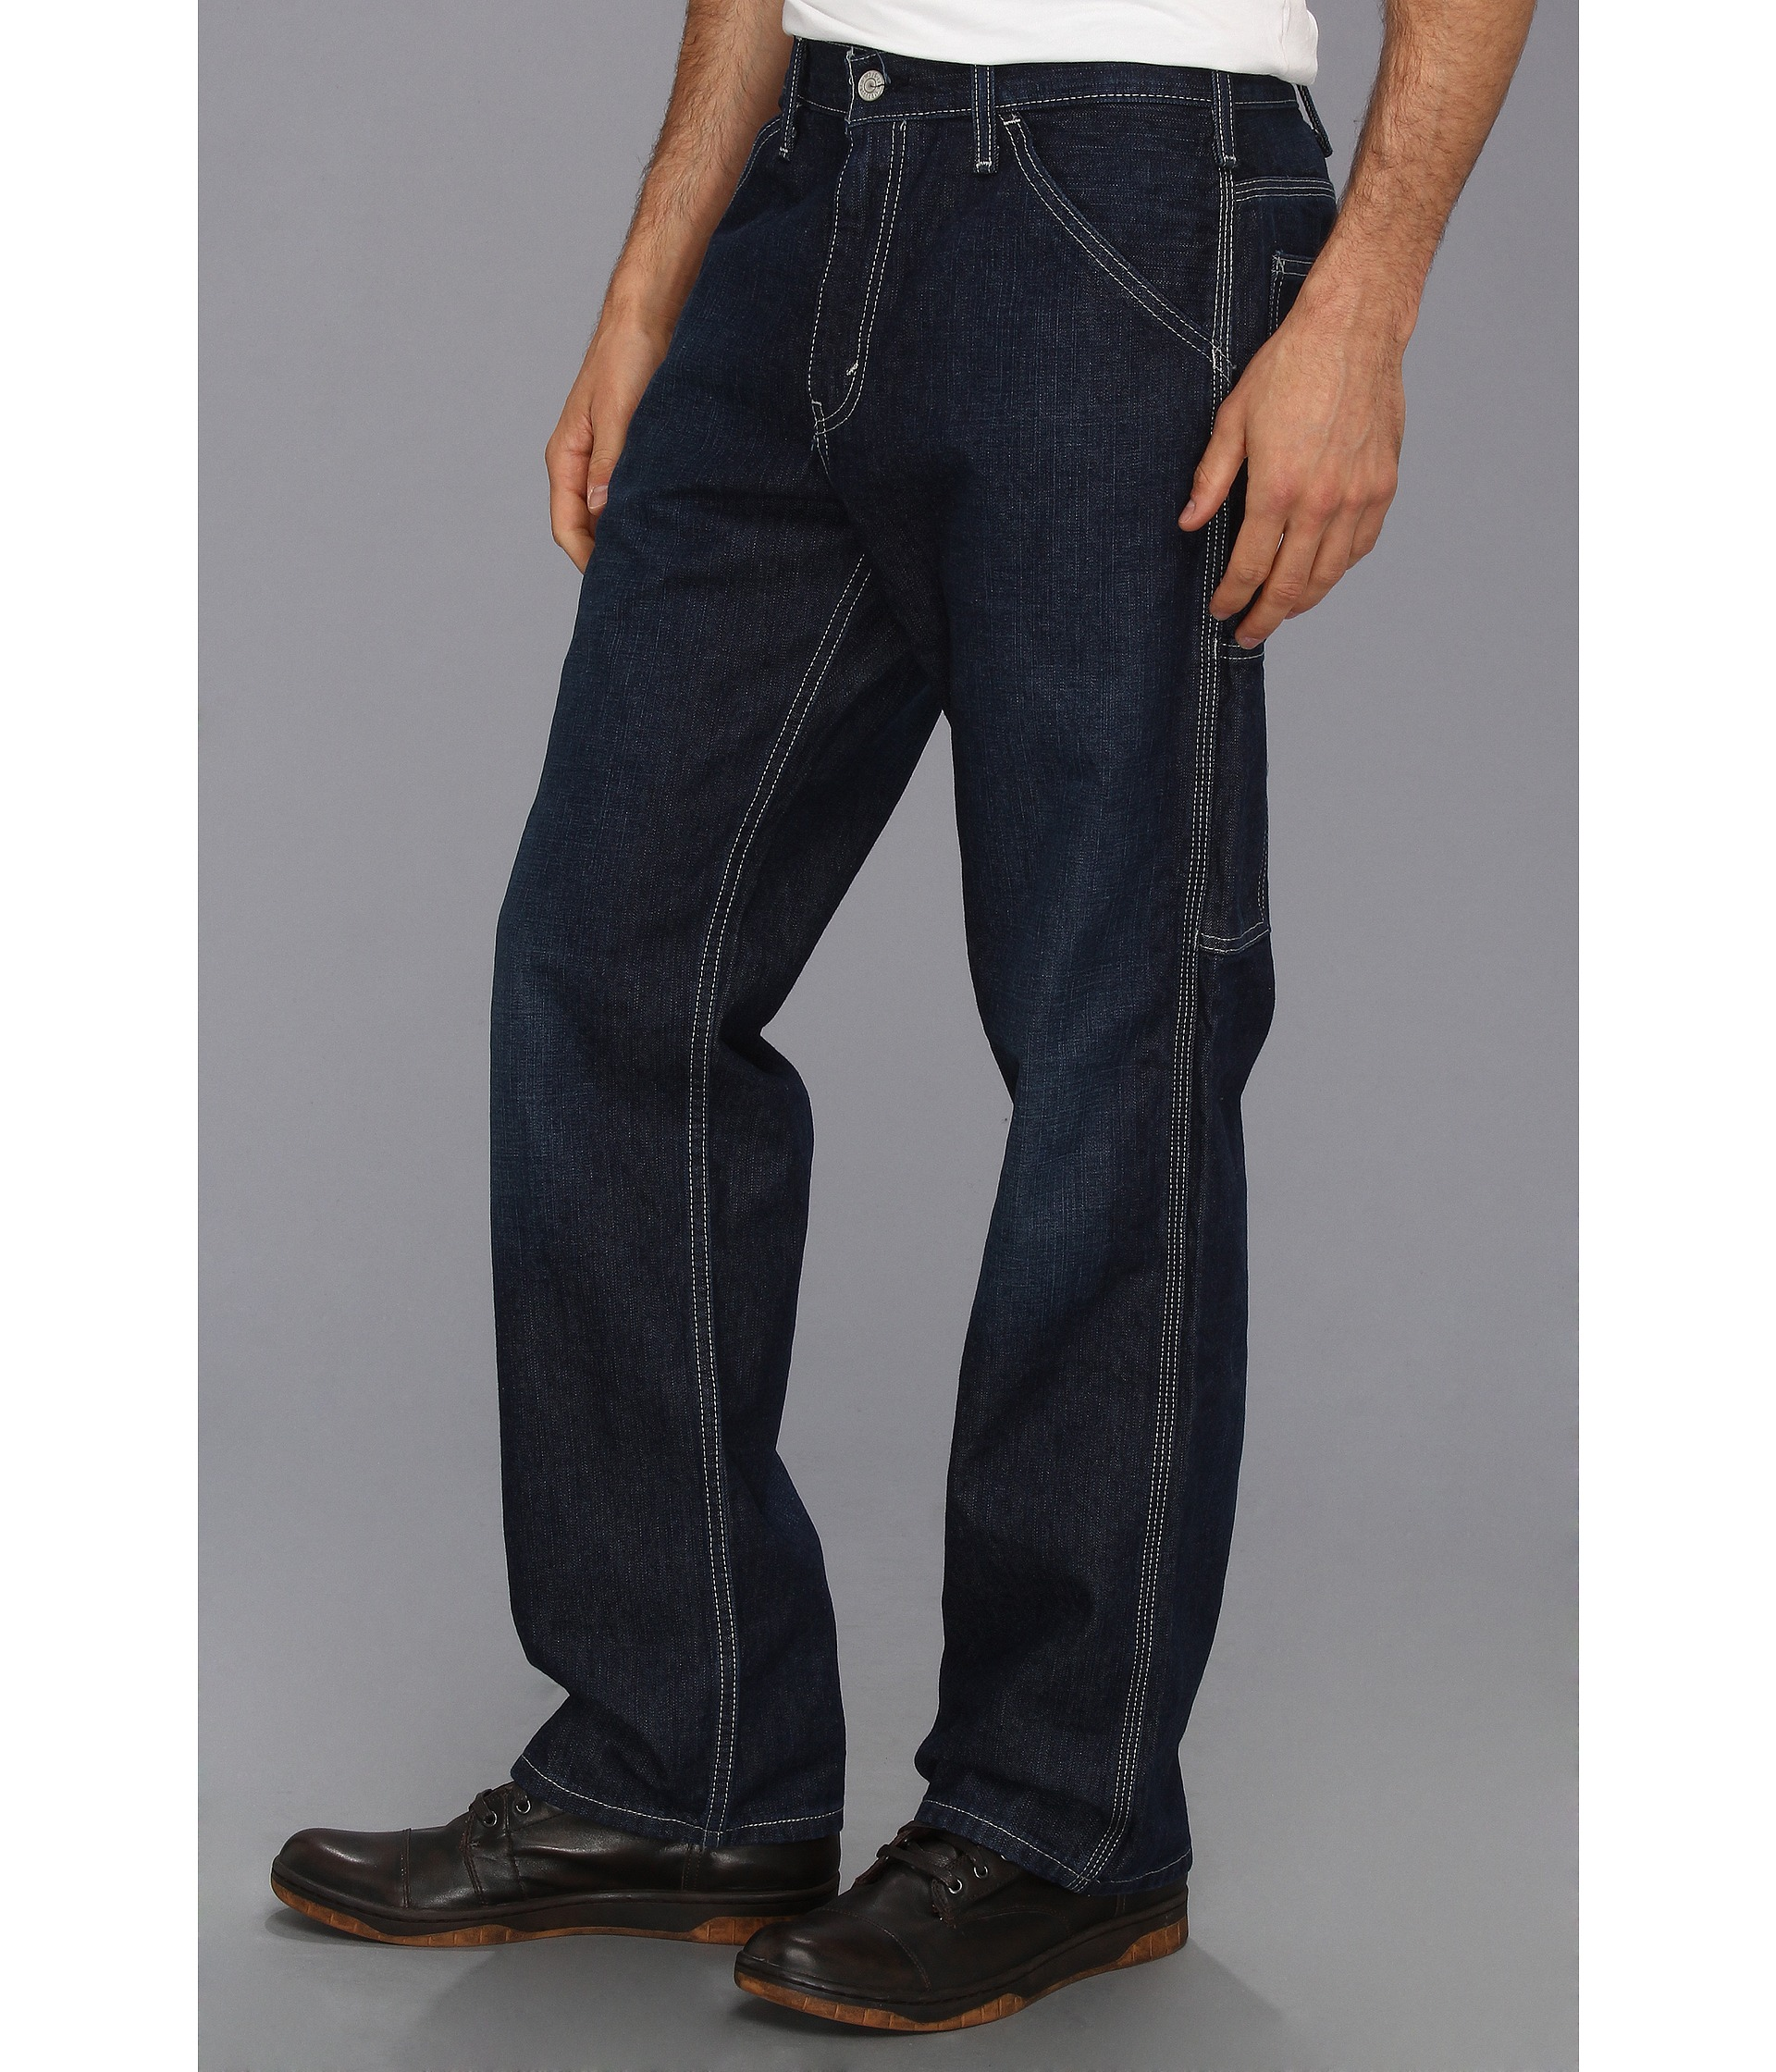 Levis Mens Carpenter Jean Zapposcom Free Shipping BOTH Ways